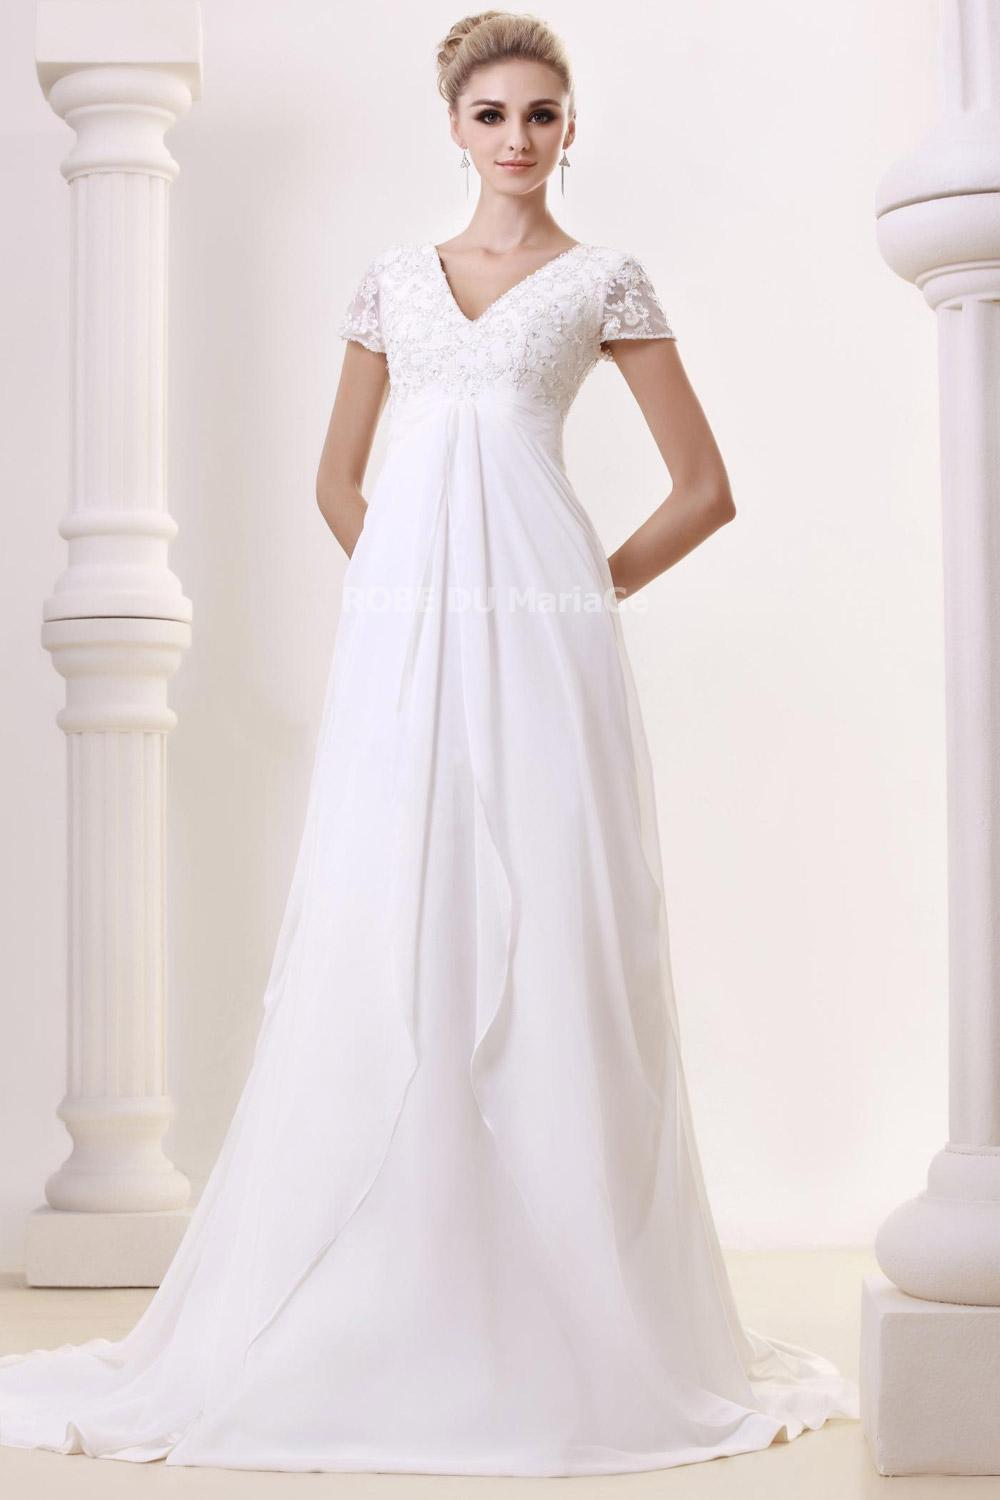 Robes de mode robe blanche femme enceinte pas cher for Robes de mariage empire uk